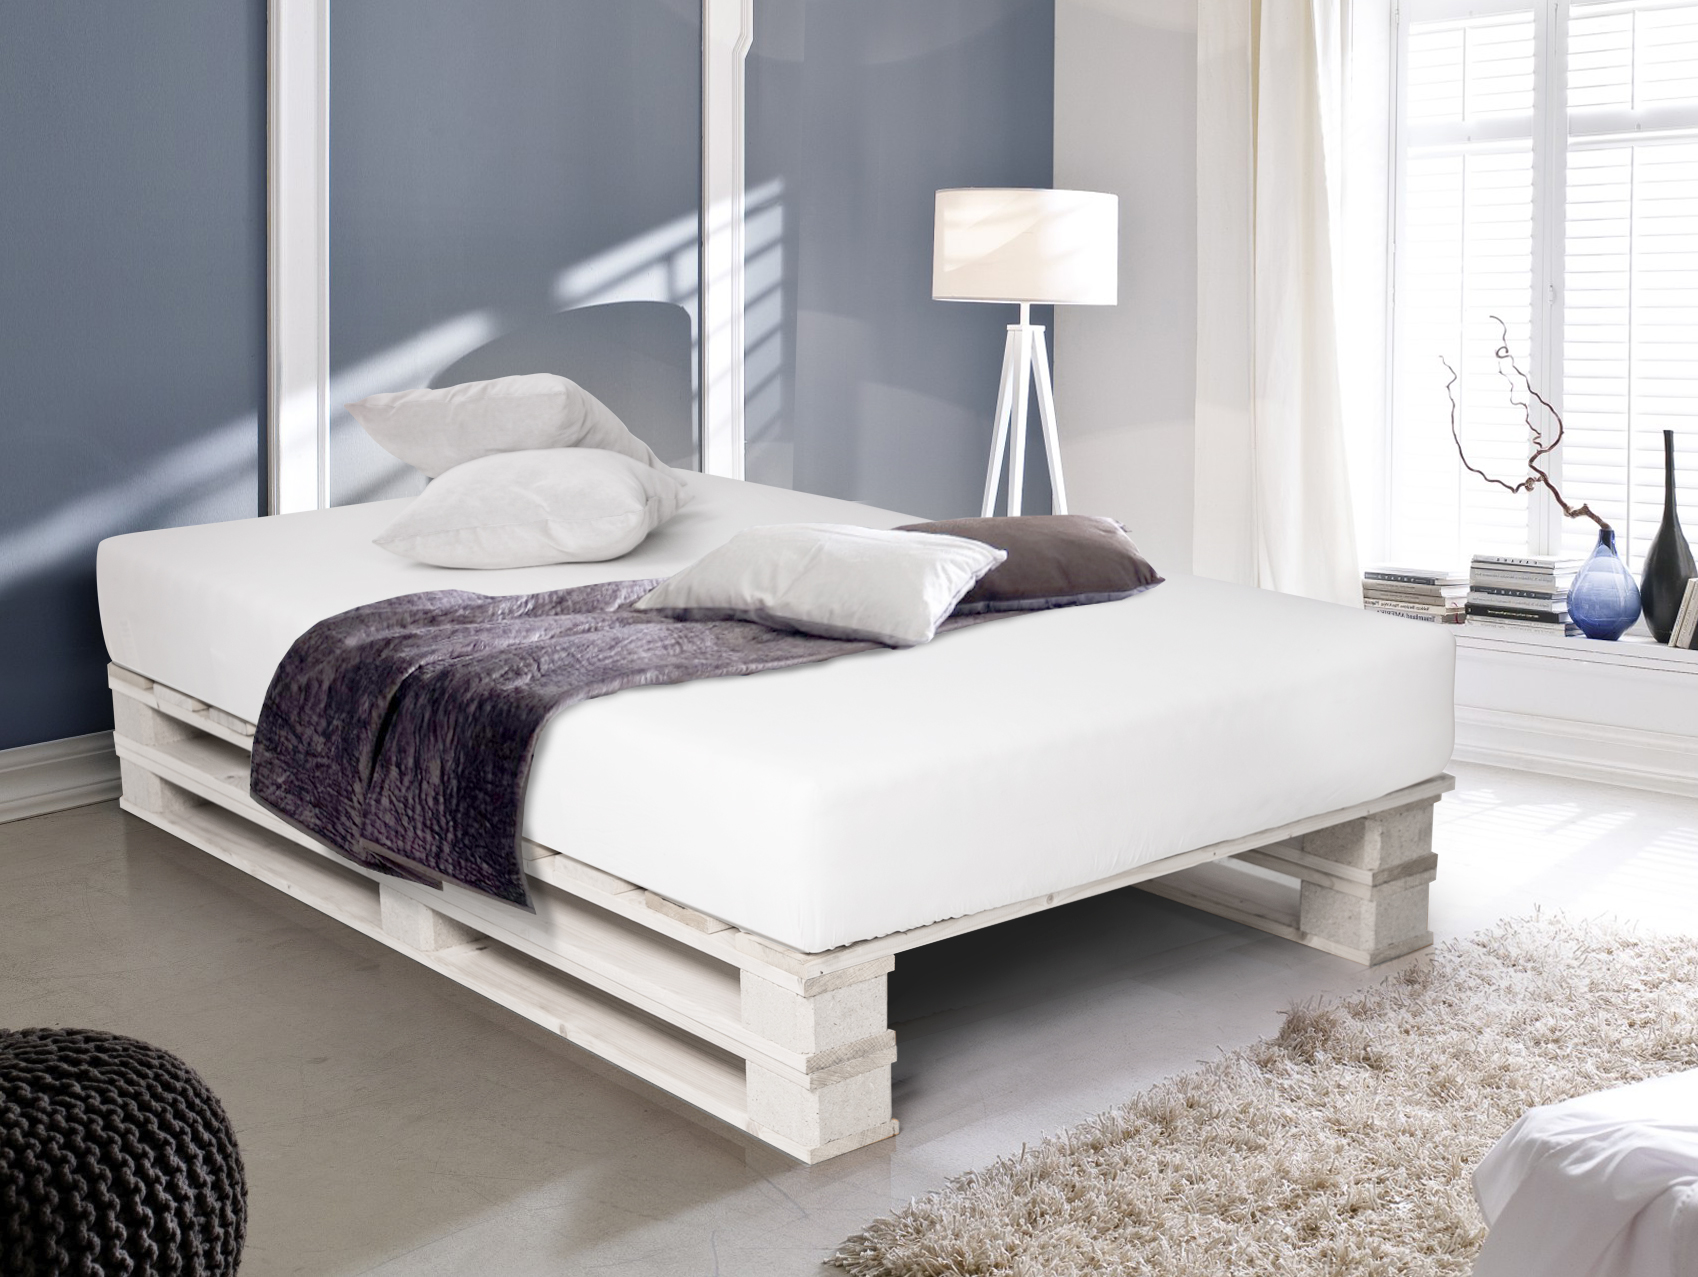 paletti duo massivholzbett palettenbett 90 x 200 cm fichte weiss. Black Bedroom Furniture Sets. Home Design Ideas